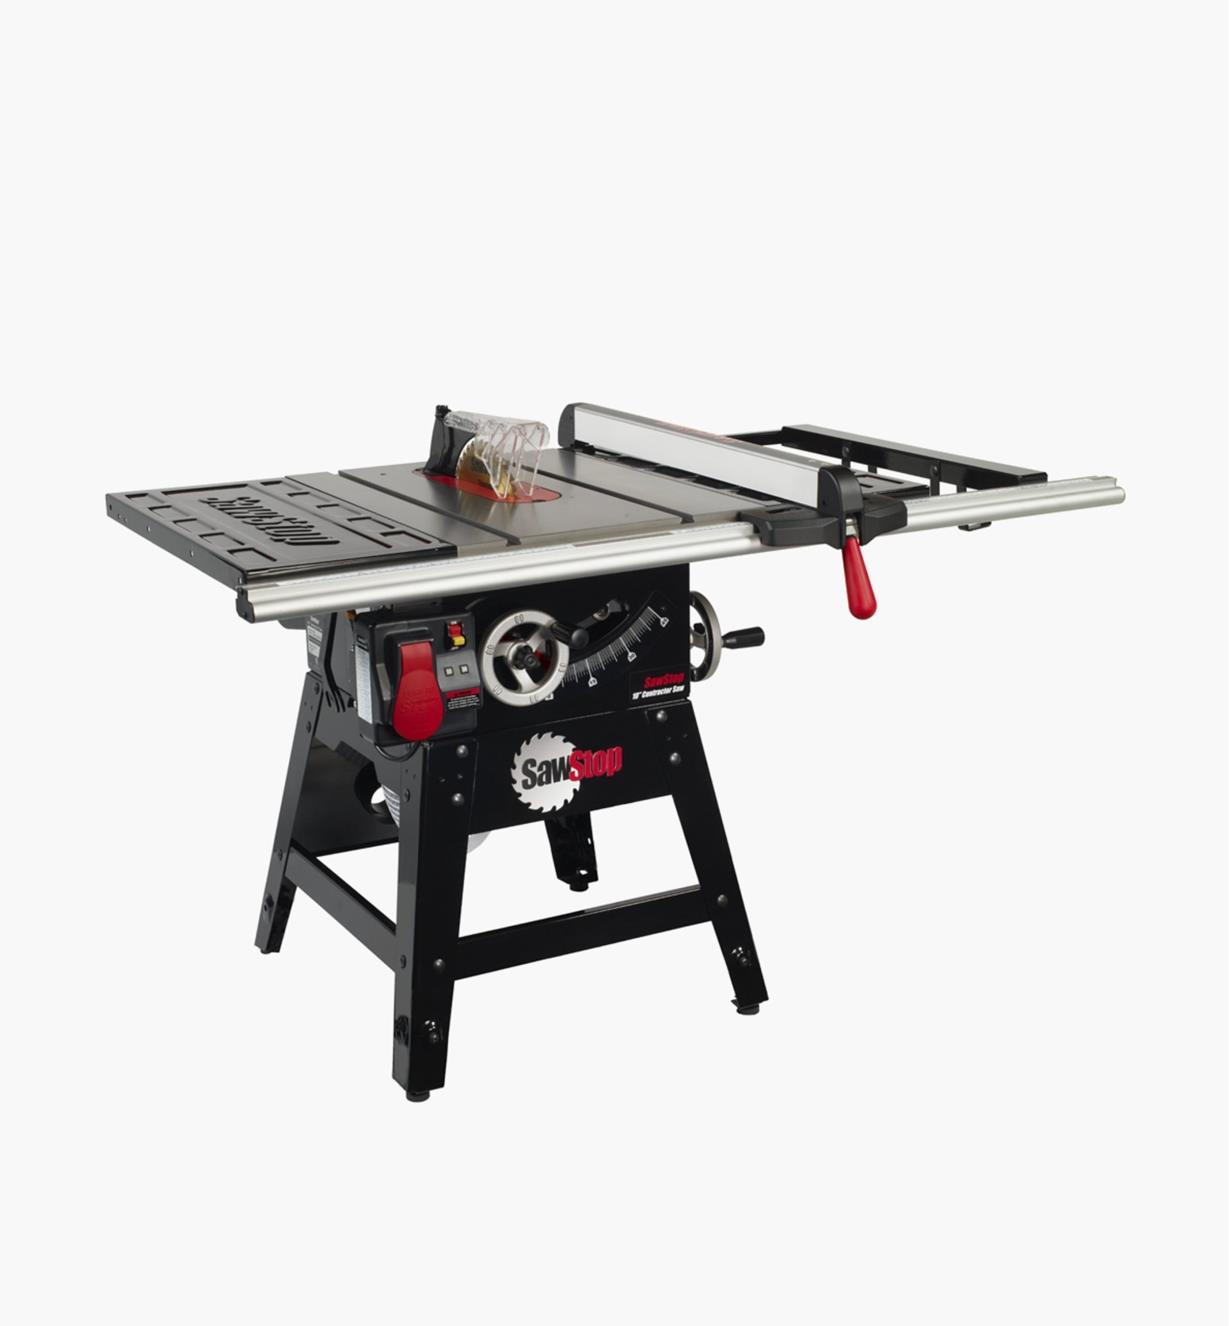 "95T2080 - SawStop Contractor Table Saw with Aluminum Fence, 30"" Rails"